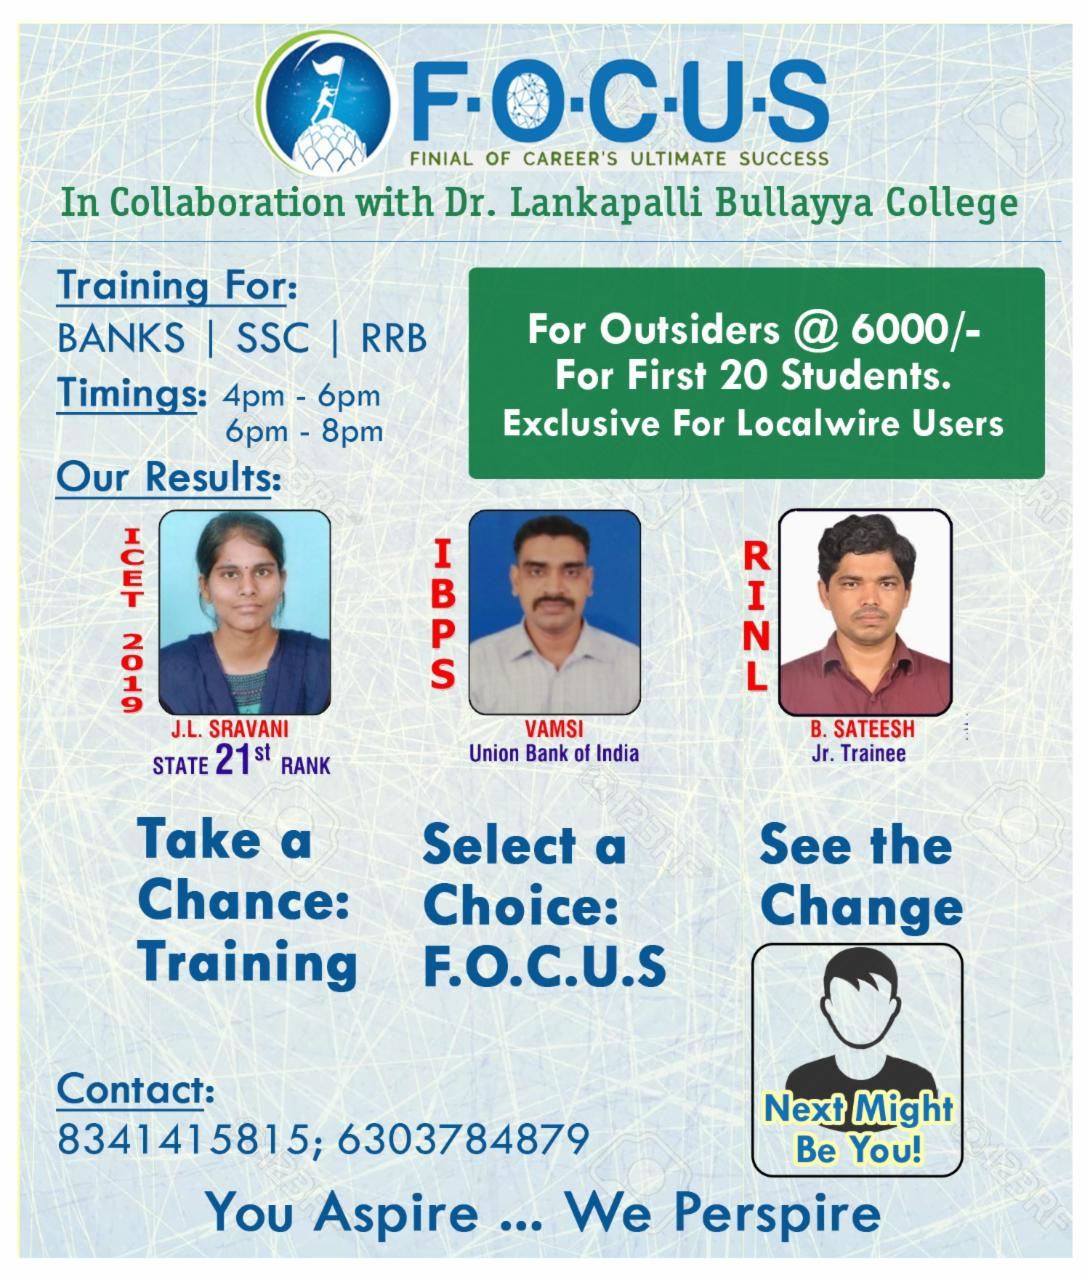 Training for Banks | SSC | RRB @ FOCUS Institute